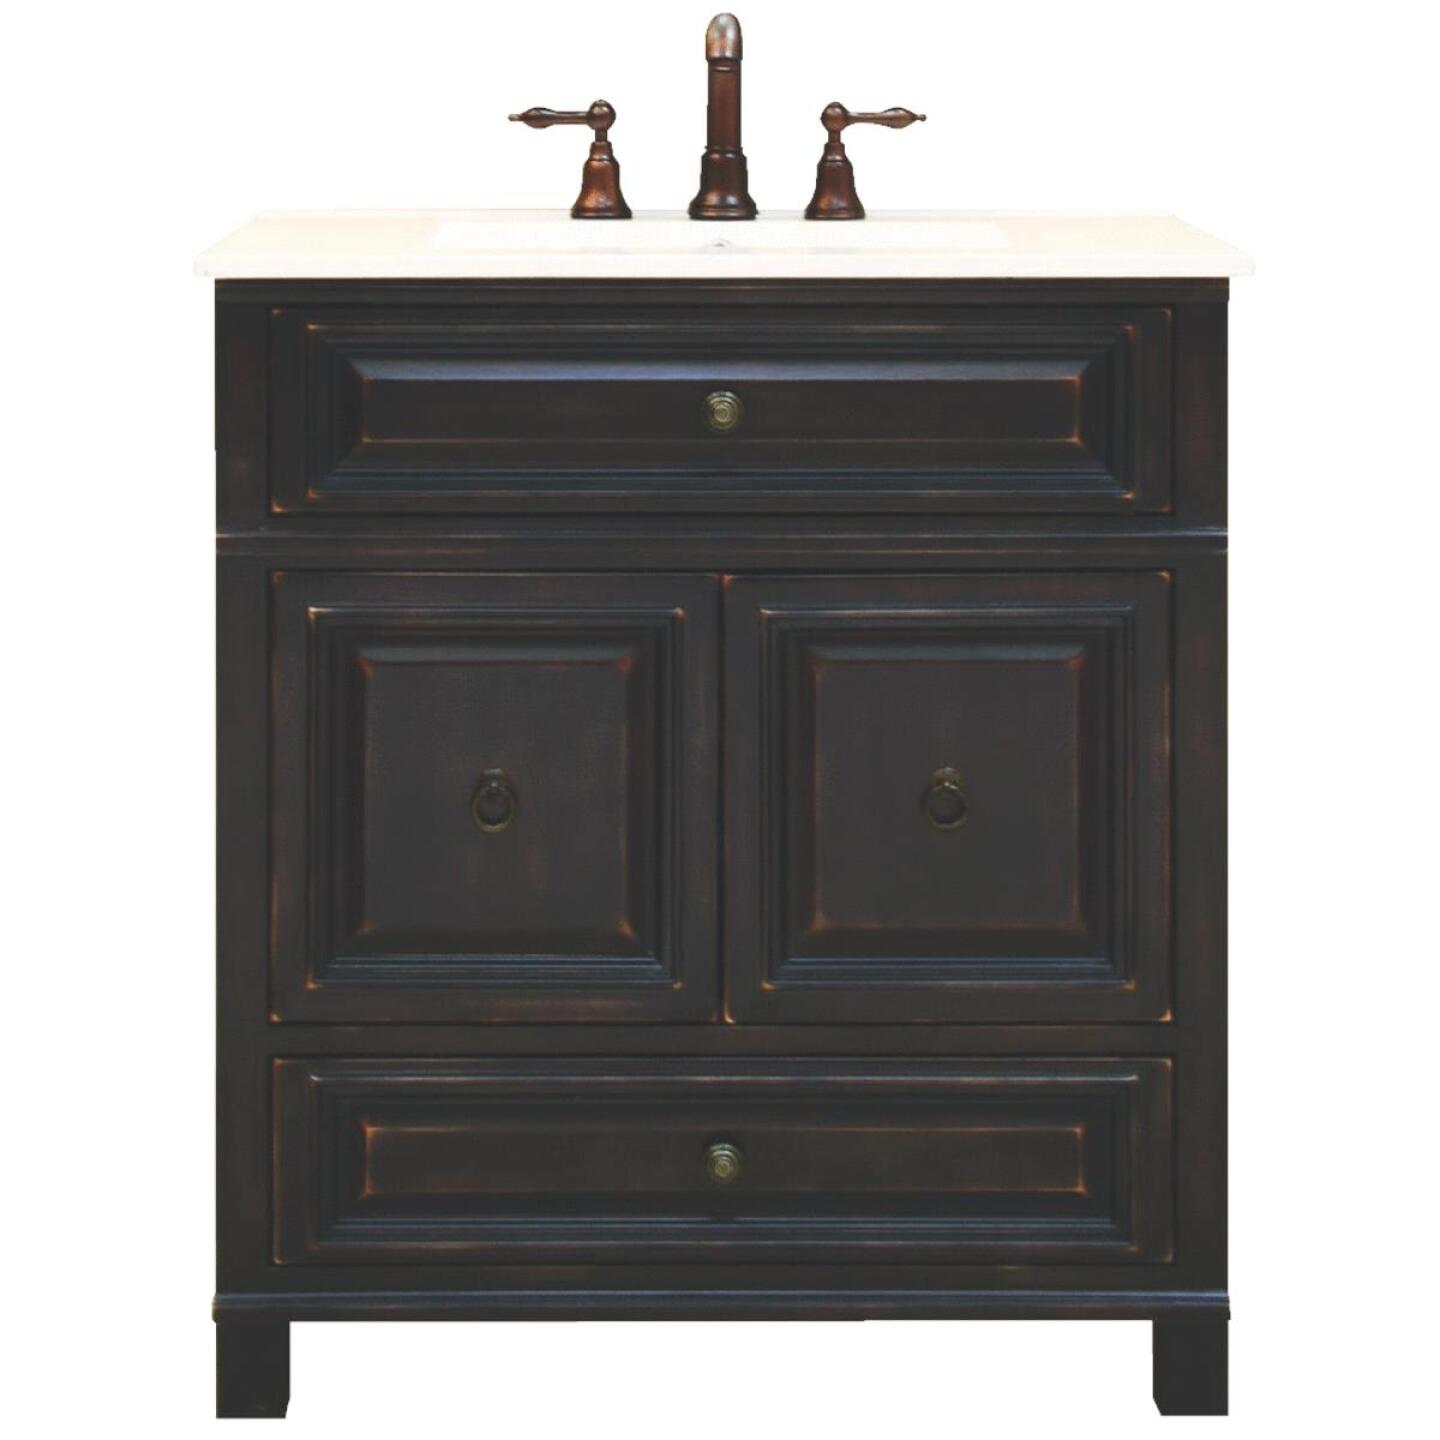 Sunny Wood Barton Hill Black Onyx 30 In. W x 34 In. H x 21 In. D Vanity Base, 2 Door/1 Drawer Image 224